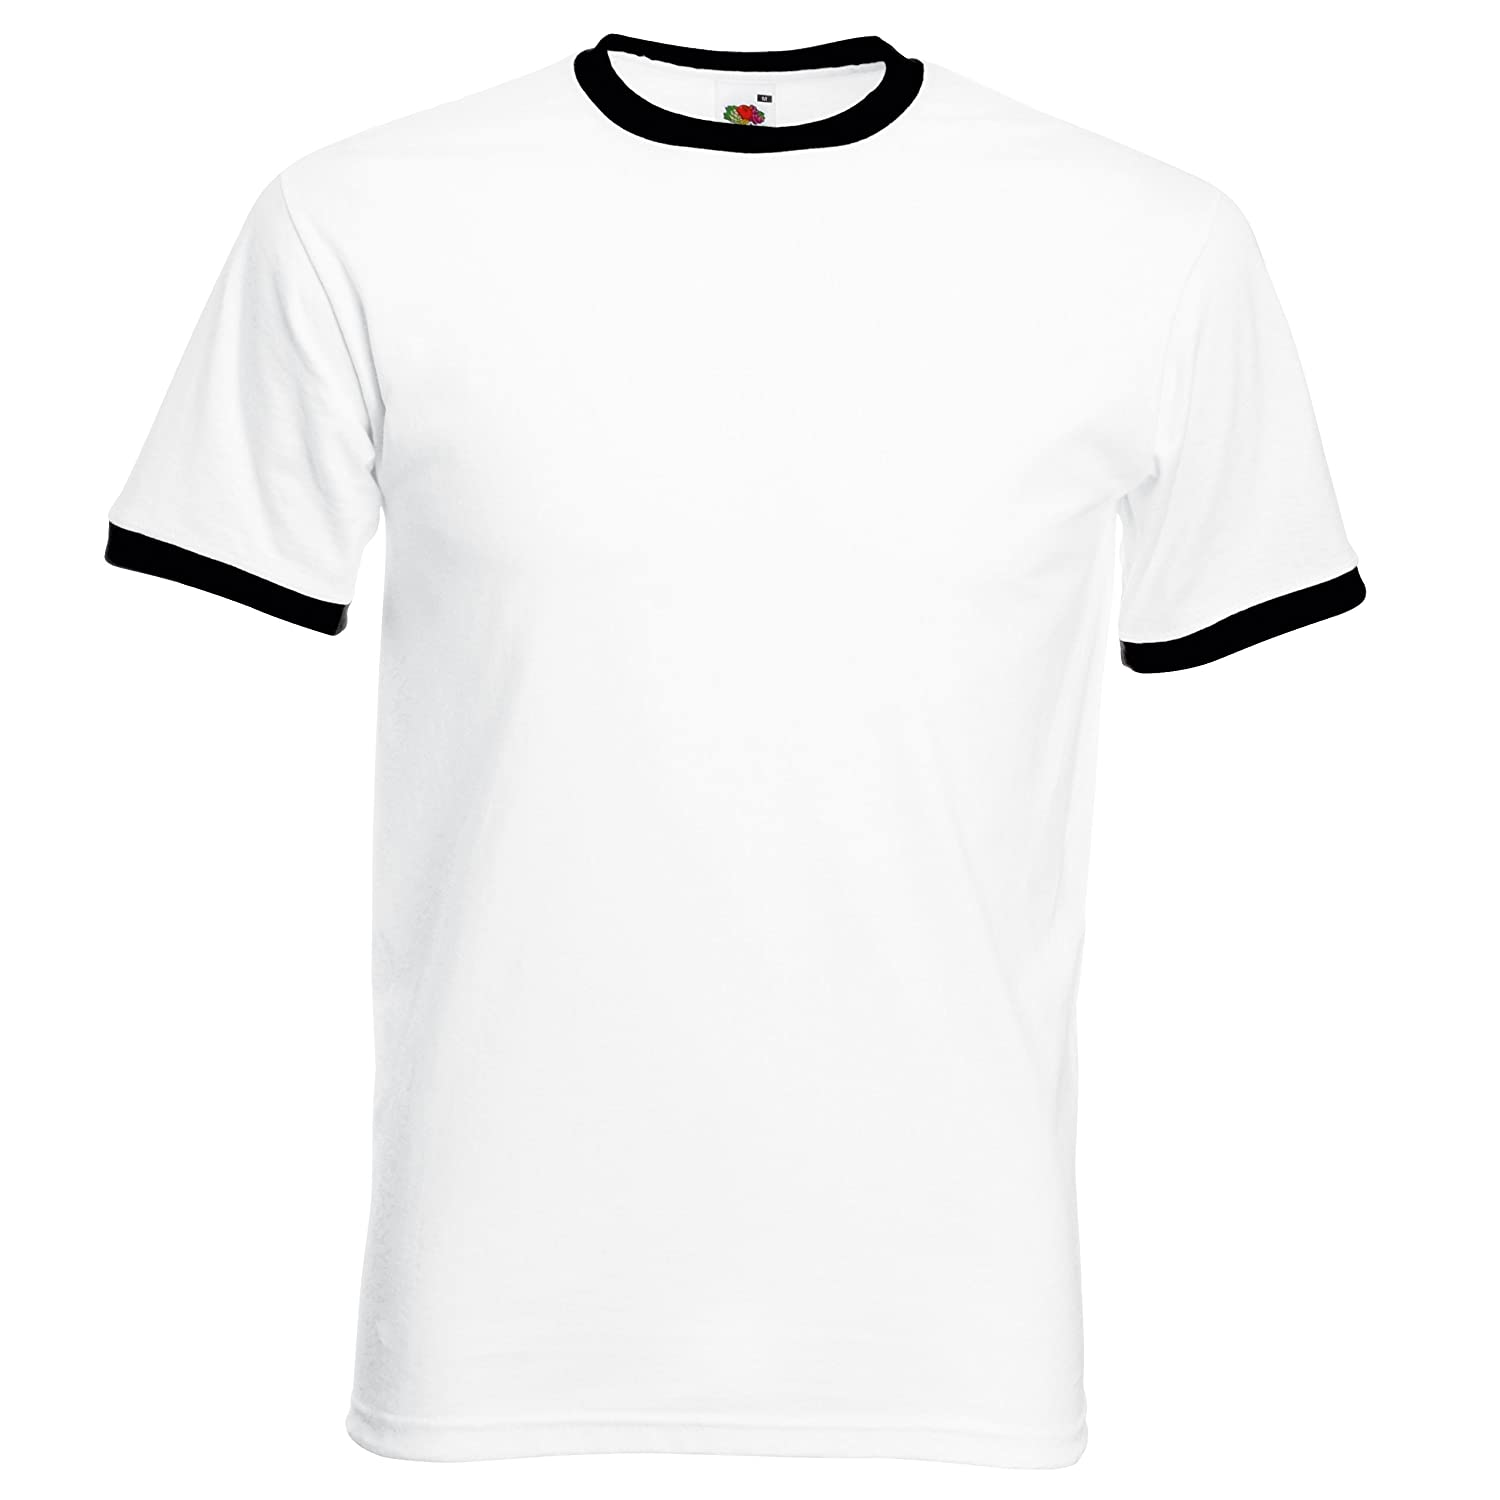 T shirt white black - Fruit Of The Loom Contrast Ringer T Shirt T Shirt Tee Shirt Amazon Co Uk Clothing